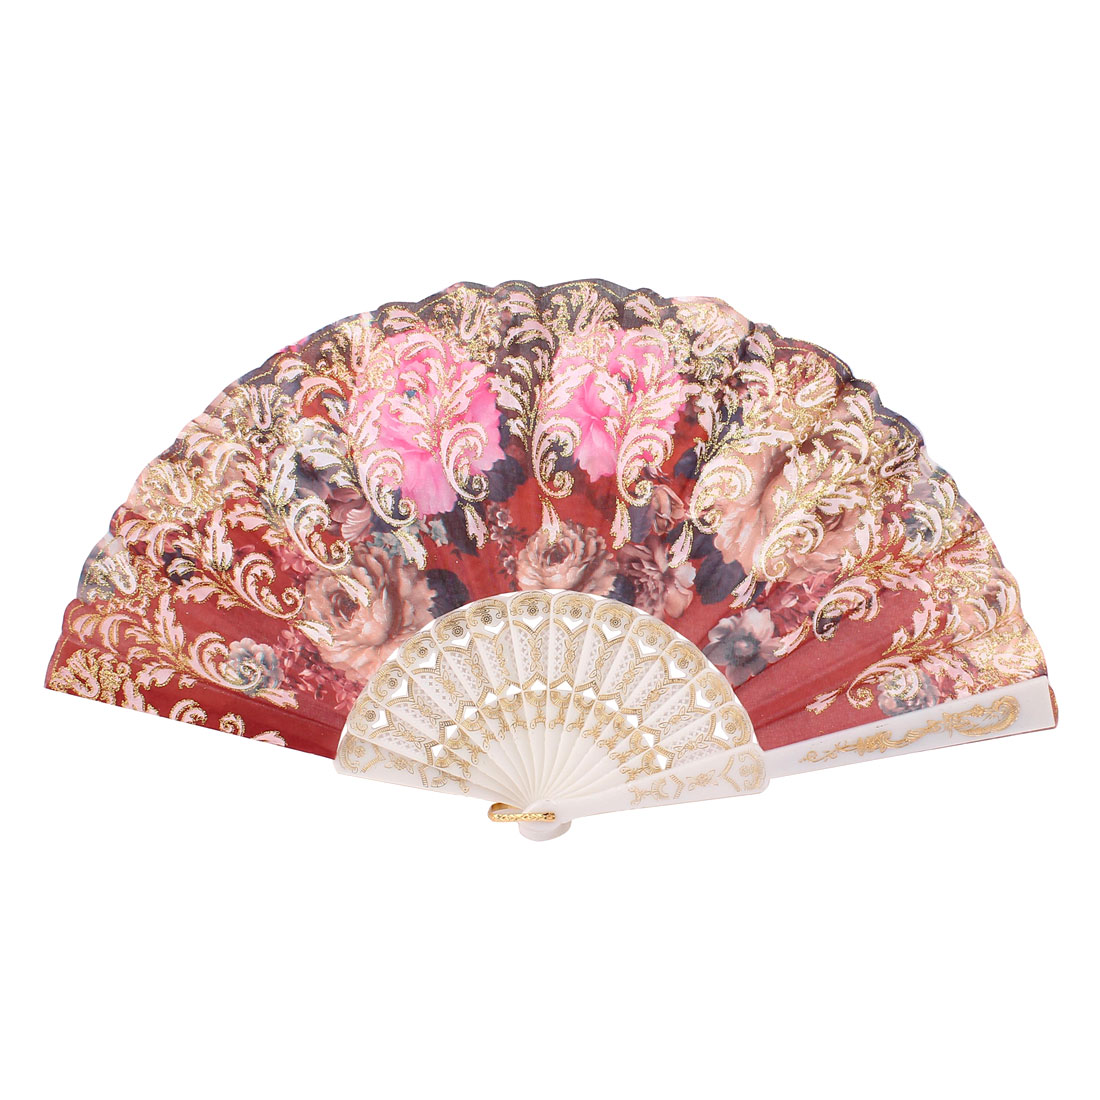 Glitter Powder Flowers Pattern Dancing Wedding Party Lady Folding Hand Fan